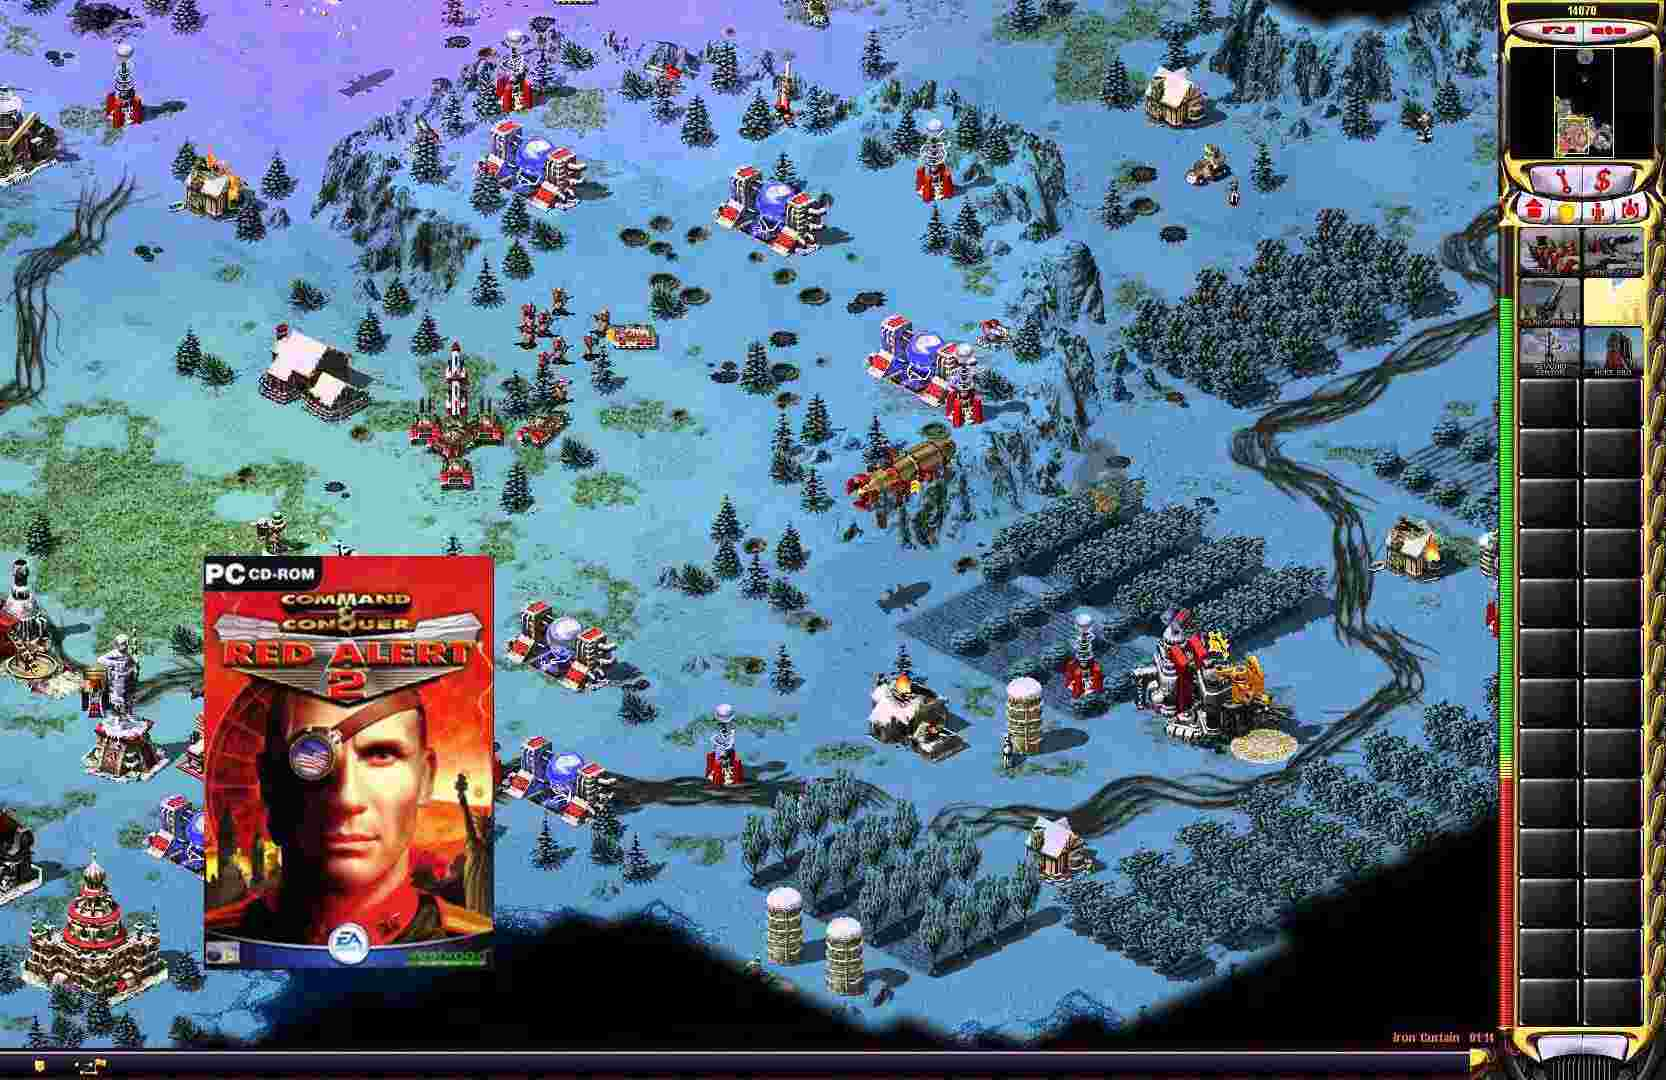 red-alert-command-conquer-1554898663.jpg